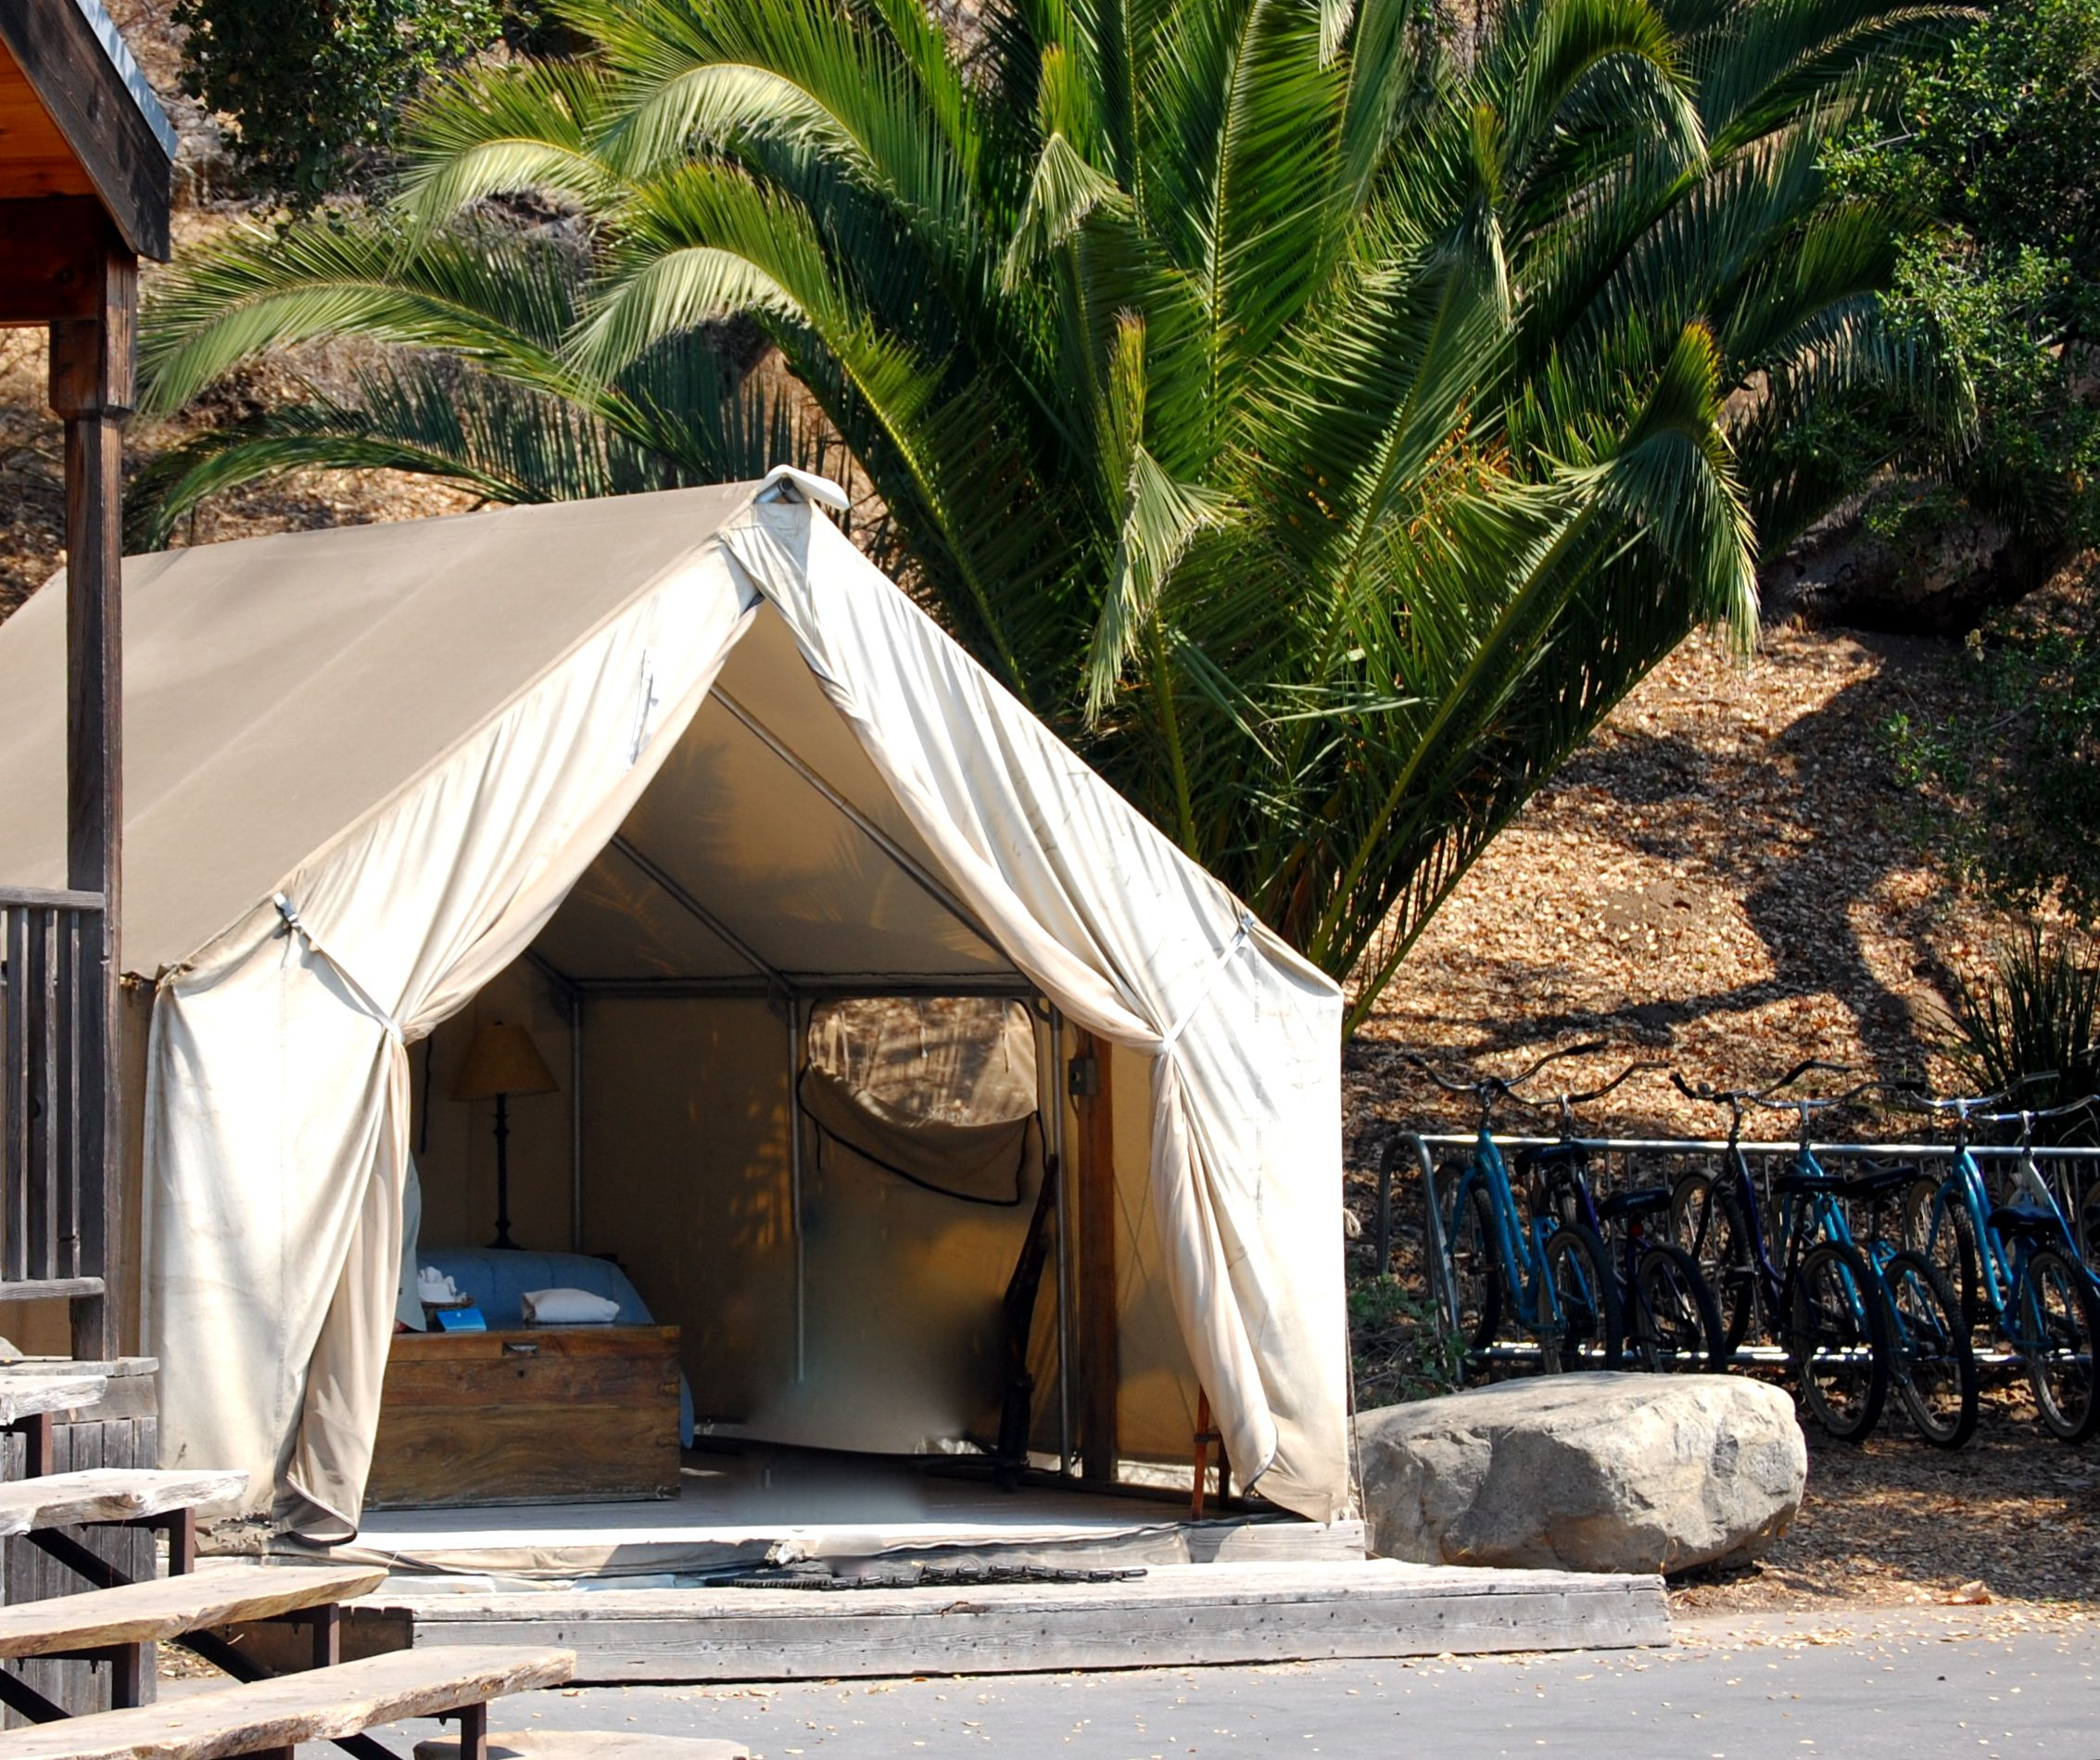 El Capitan Canyon C&ground outside of Santa Barbara Ca. Glamour c&ing(Gl&ing & El Capitan Canyon Campground outside of Santa Barbara Ca ...